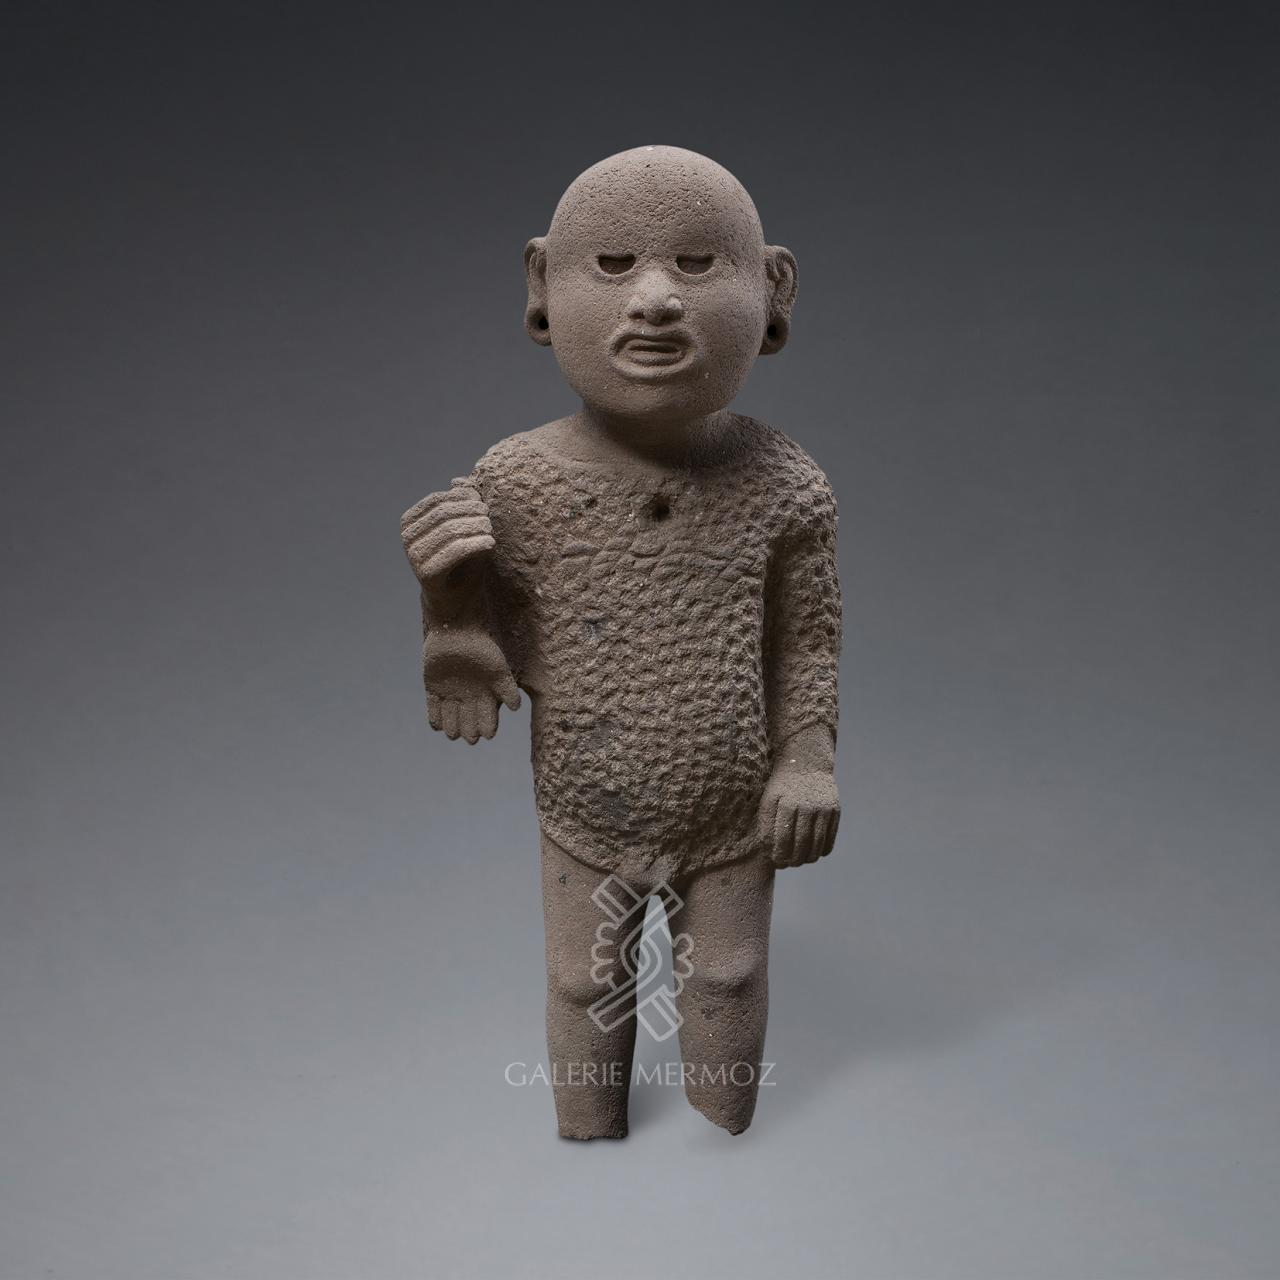 Fascinating Pre-Columbian Art at PAD 2019 Galerie Mermoz - God of Spring pad geneve Fascinating Pre-Columbian Art at PAD Geneve 2019: Galerie Mermoz Fascinating Pre Columbian Art at PAD 2019 Galerie Mermoz God of Spring